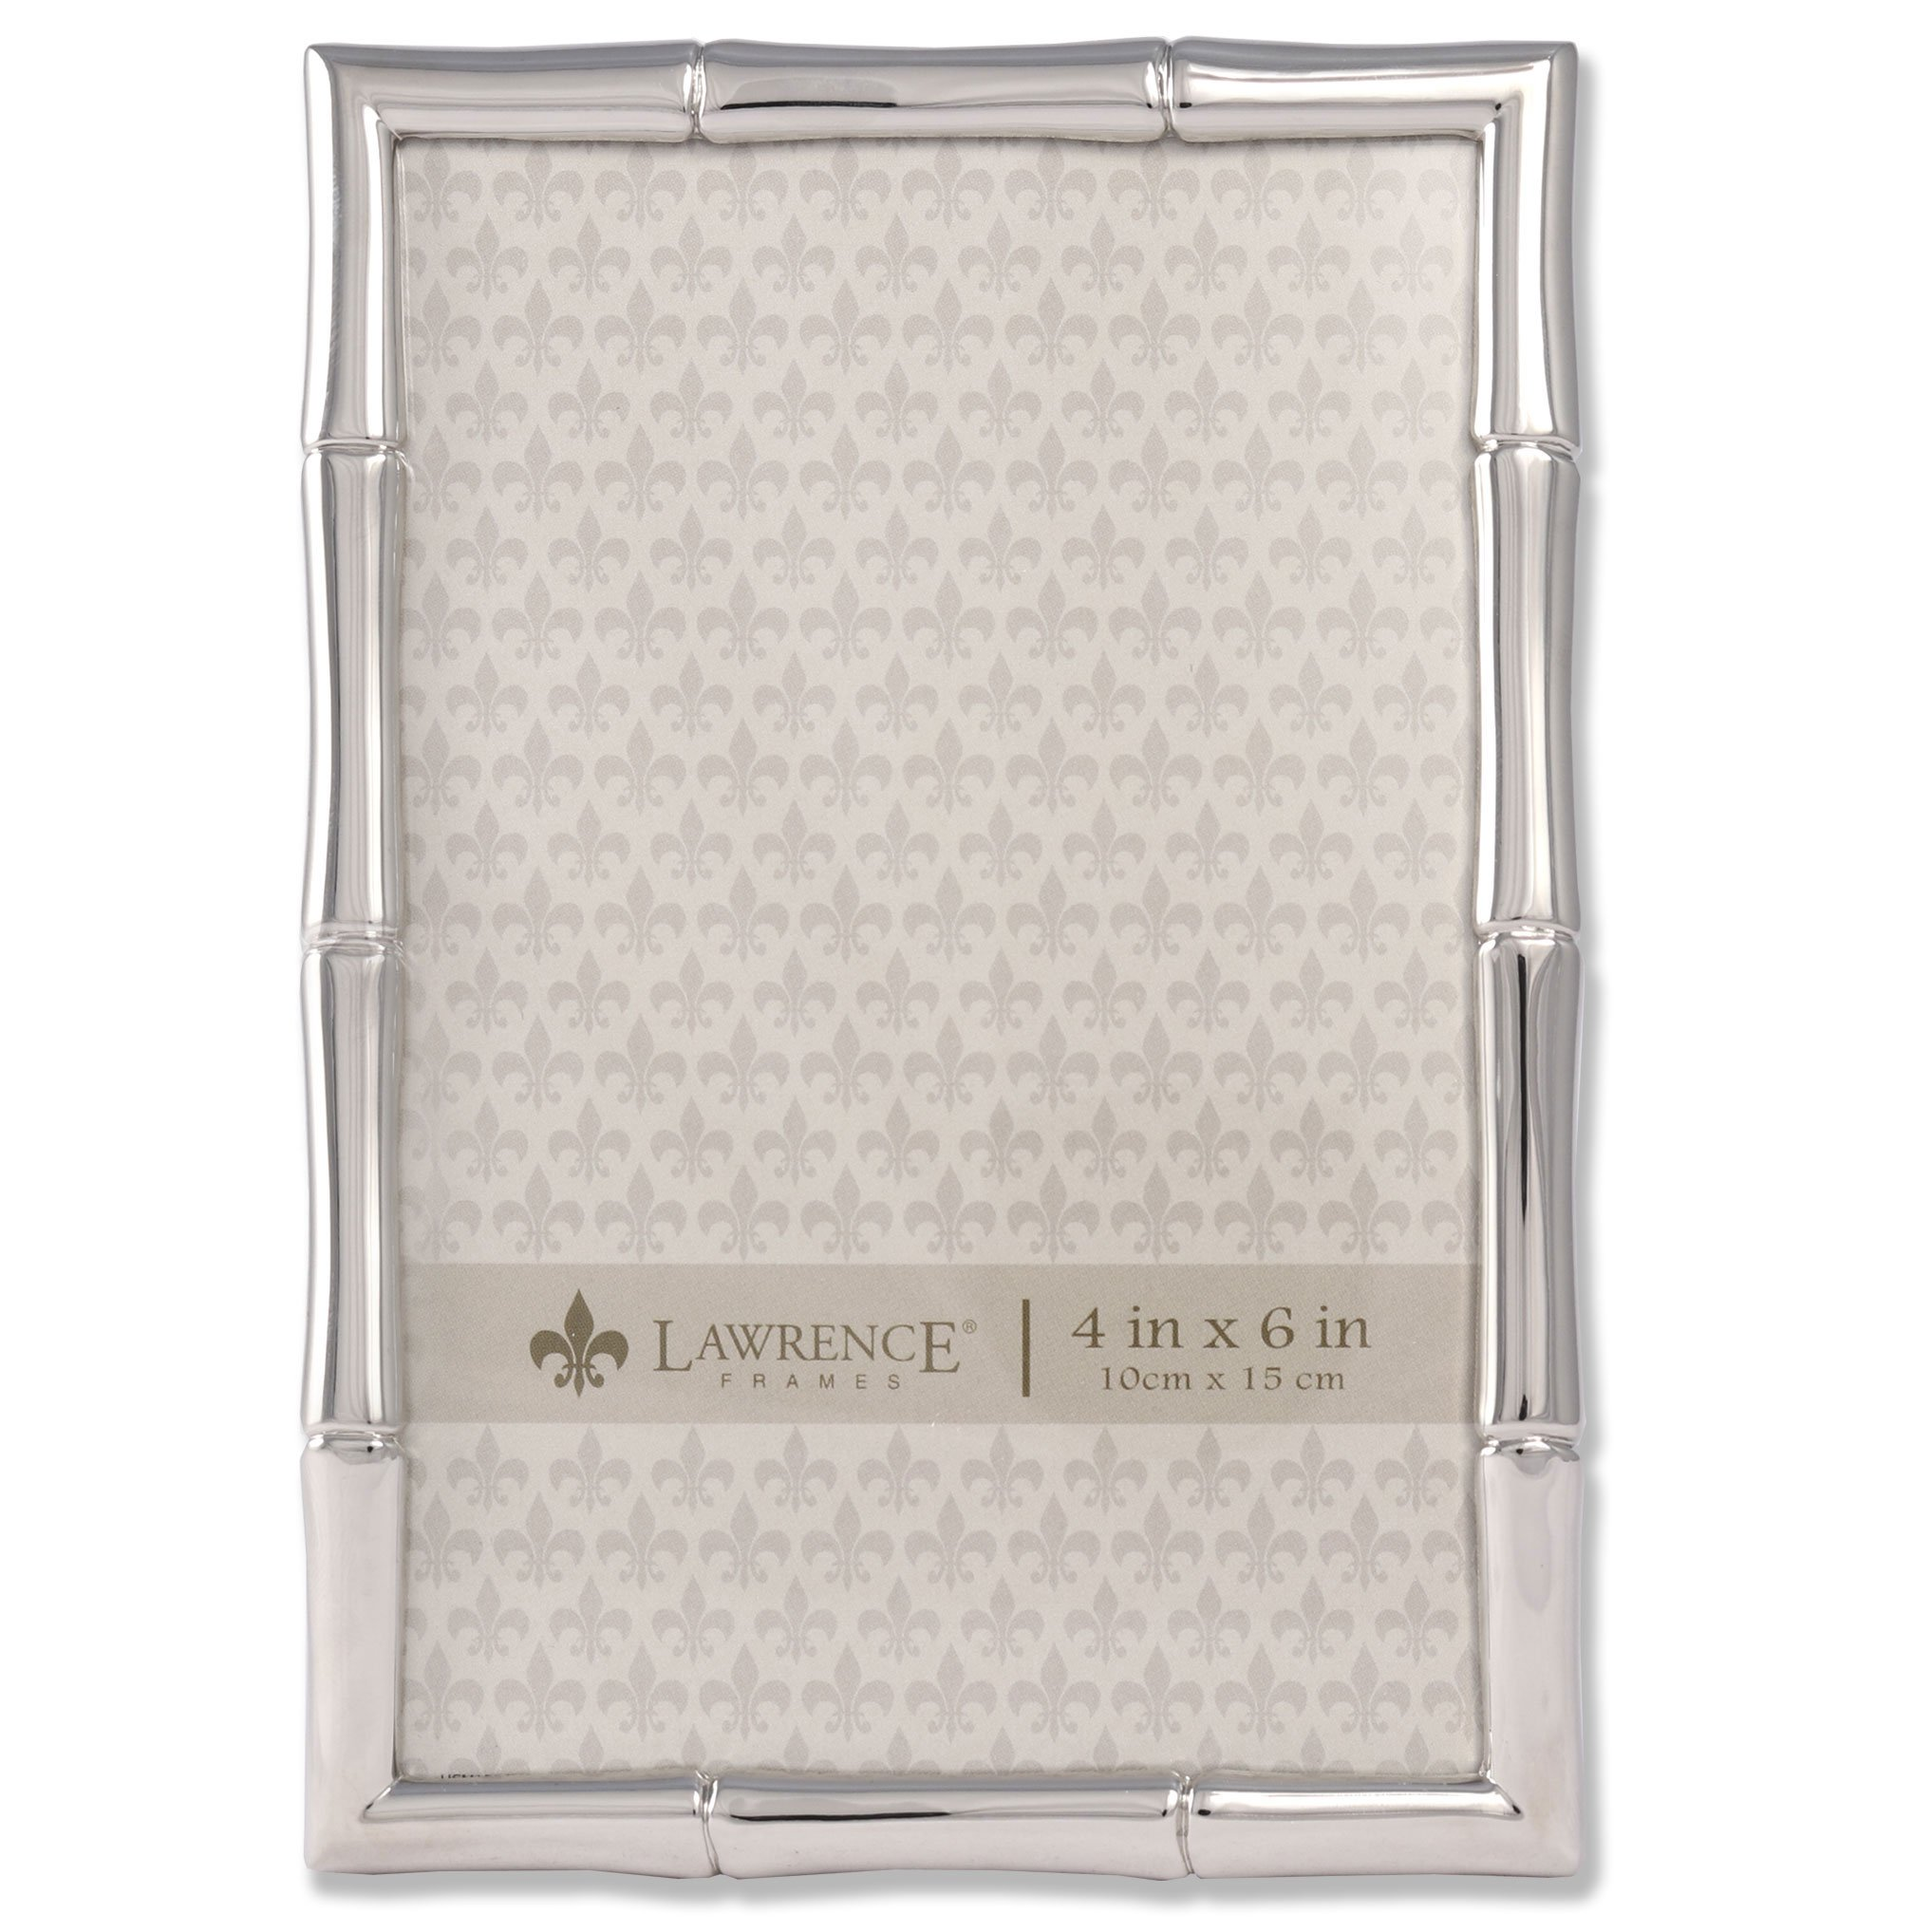 Lawrence Frames 710146 Silver Metal Bamboo Picture Frame, 4 by 6-Inch by Lawrence Frames